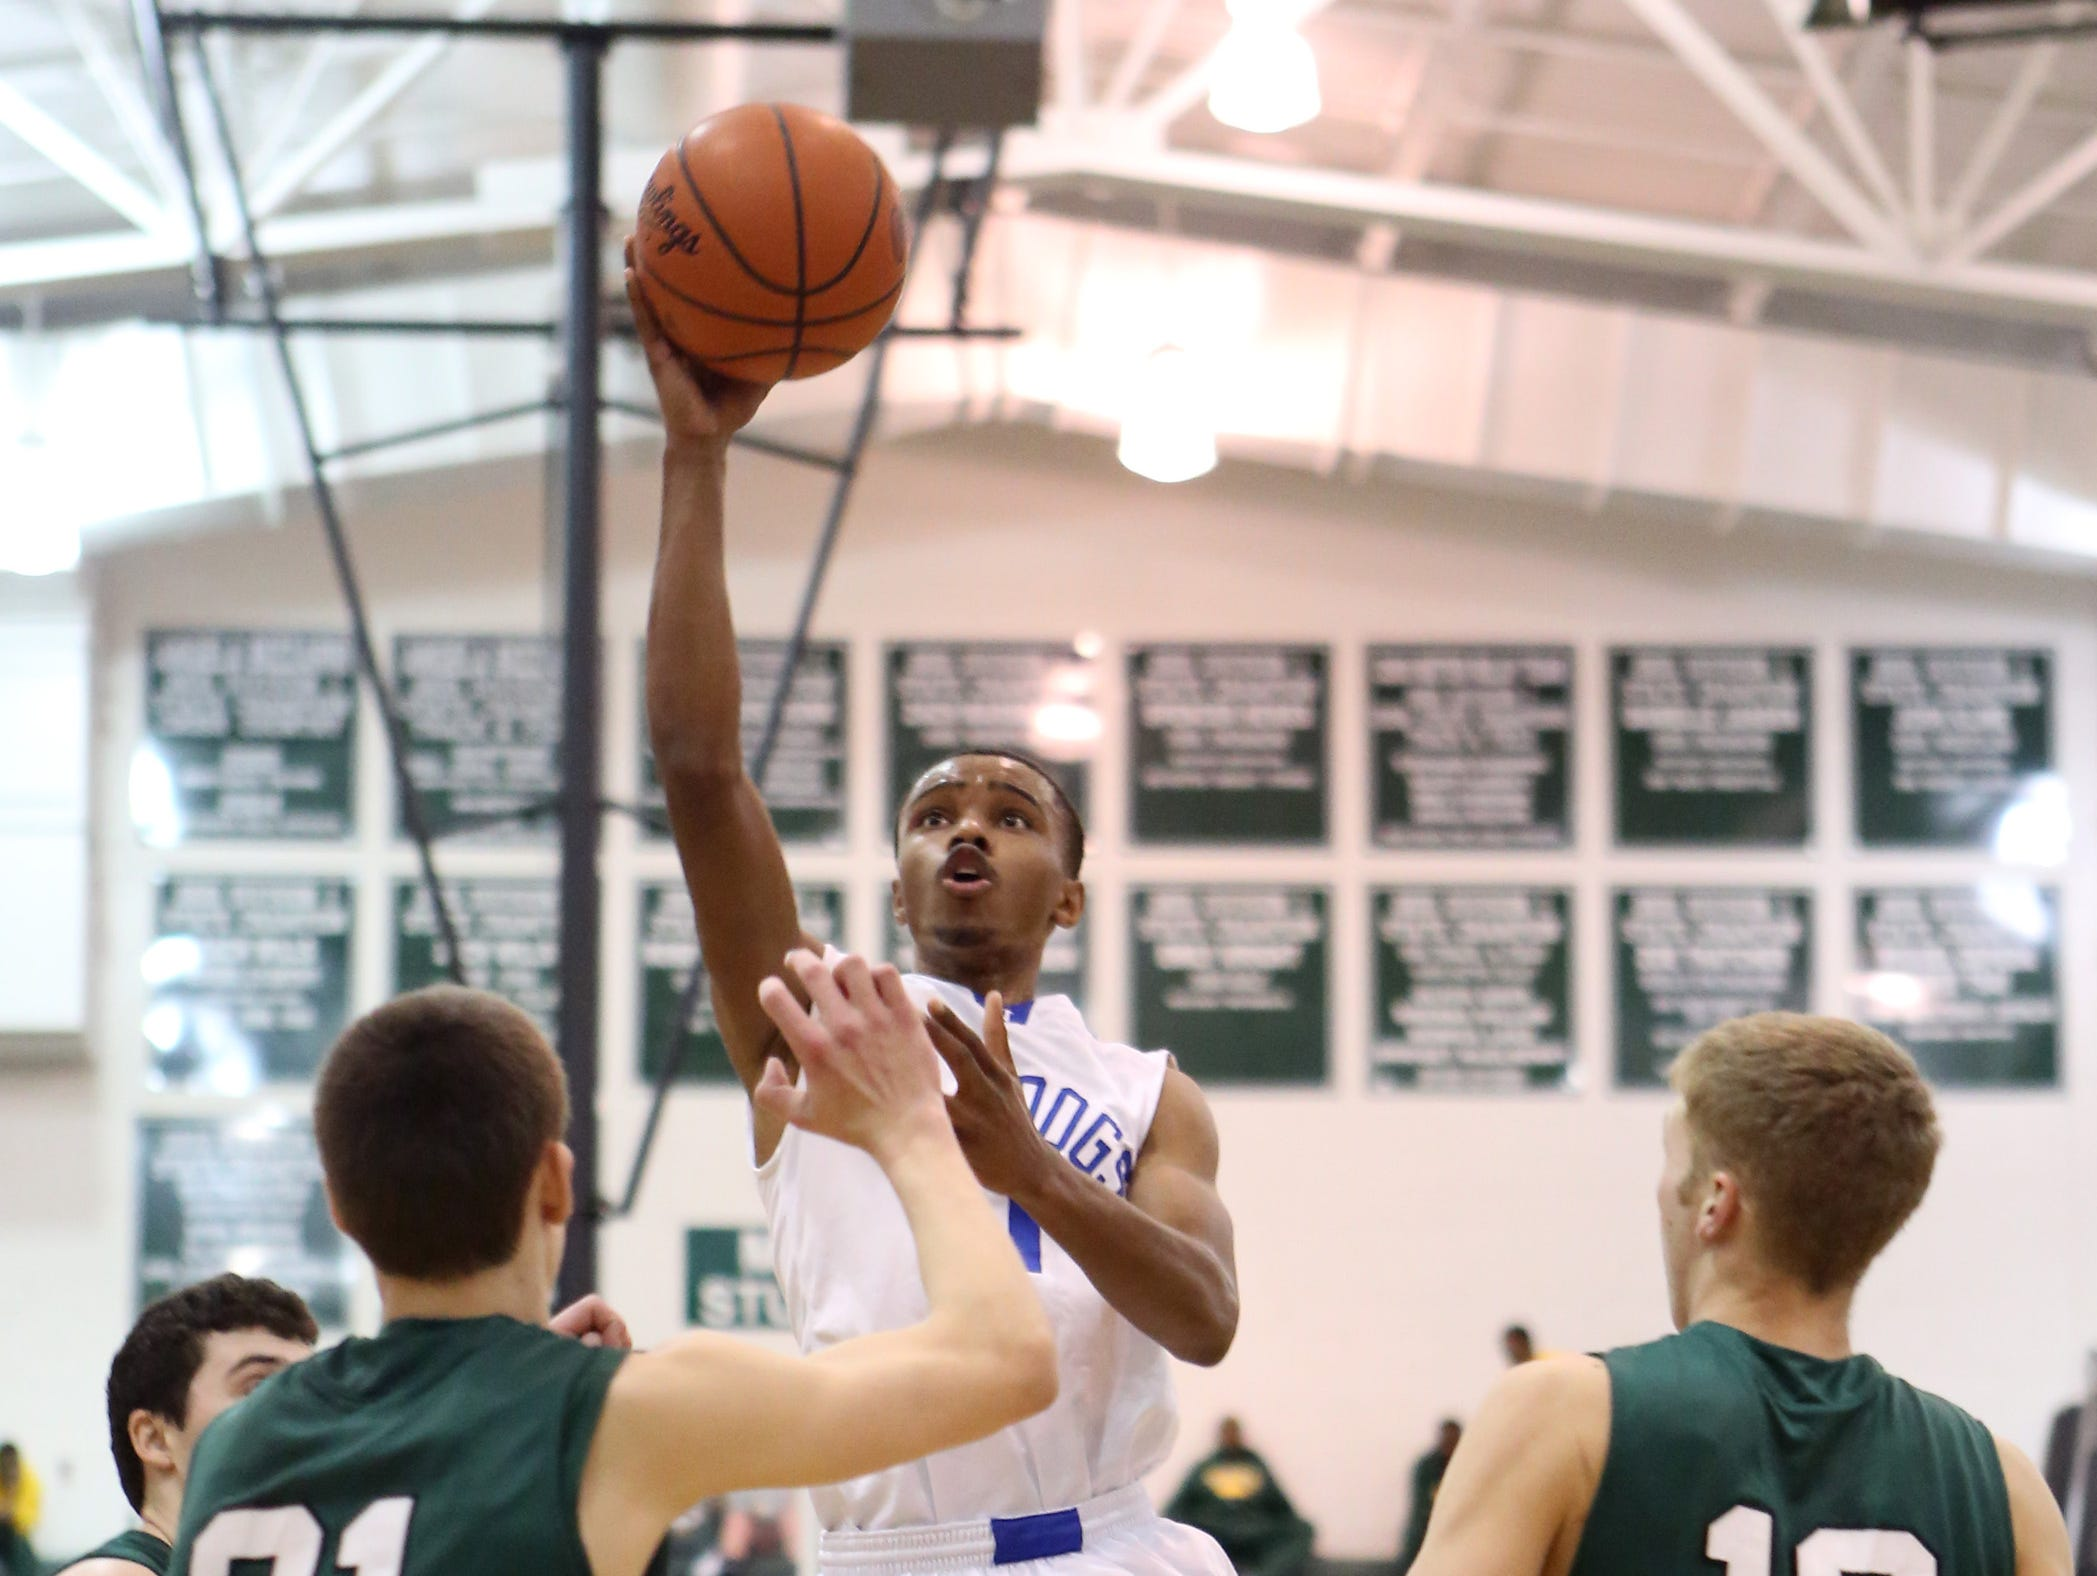 Woodward guard Isaiah Jones scores in the Division II Boys Southwest sectional playoff game between McNicholas and Woodward High School at Mason High School, March 7. McNicholas defeated Woodward 65-44.